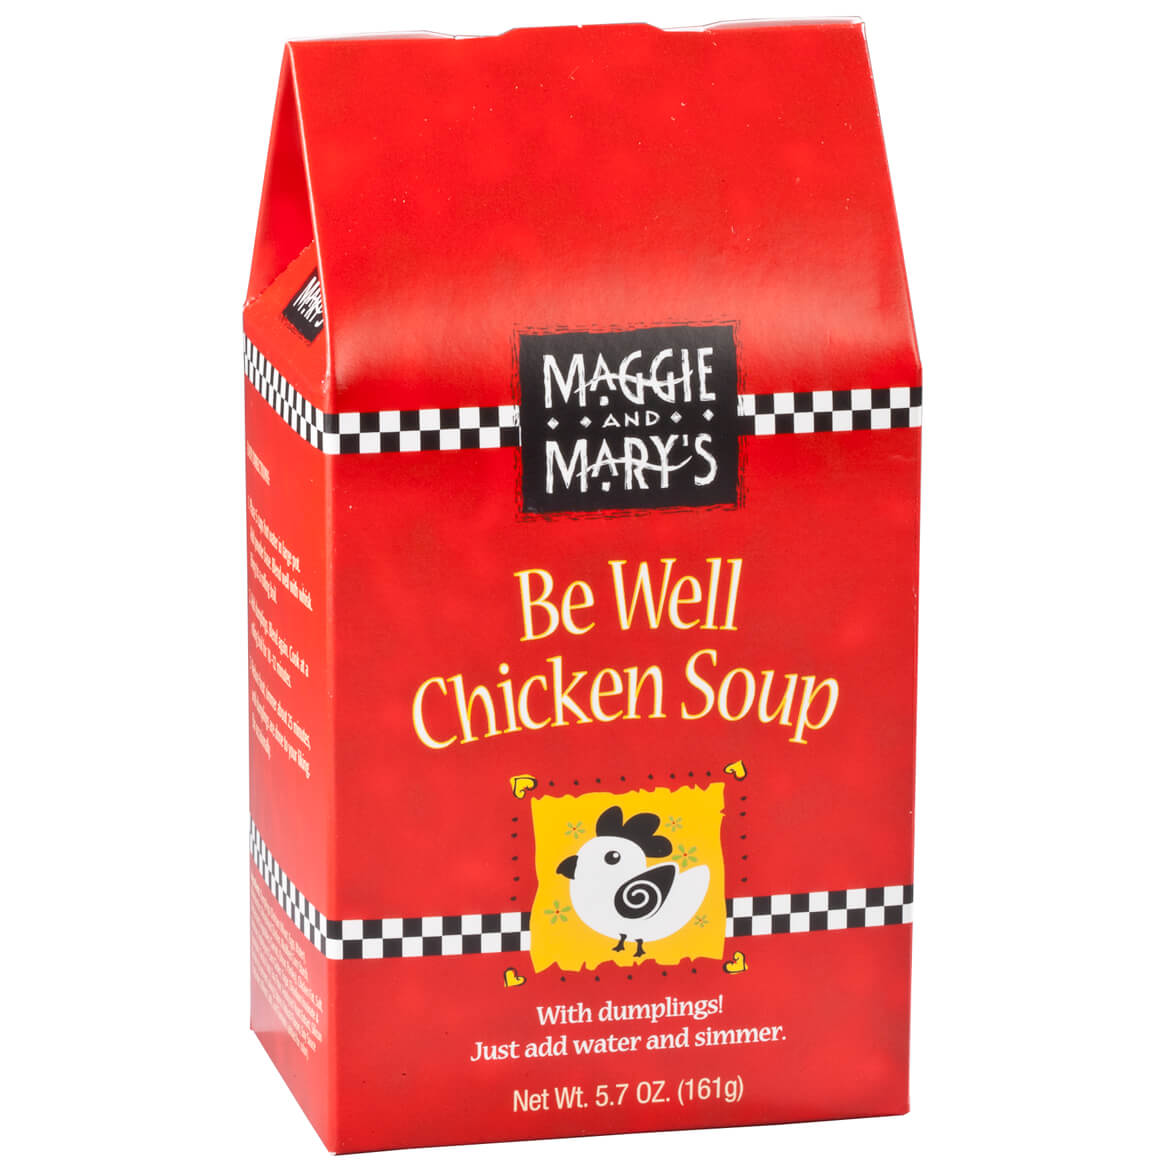 Be Well Chicken Soup Mix